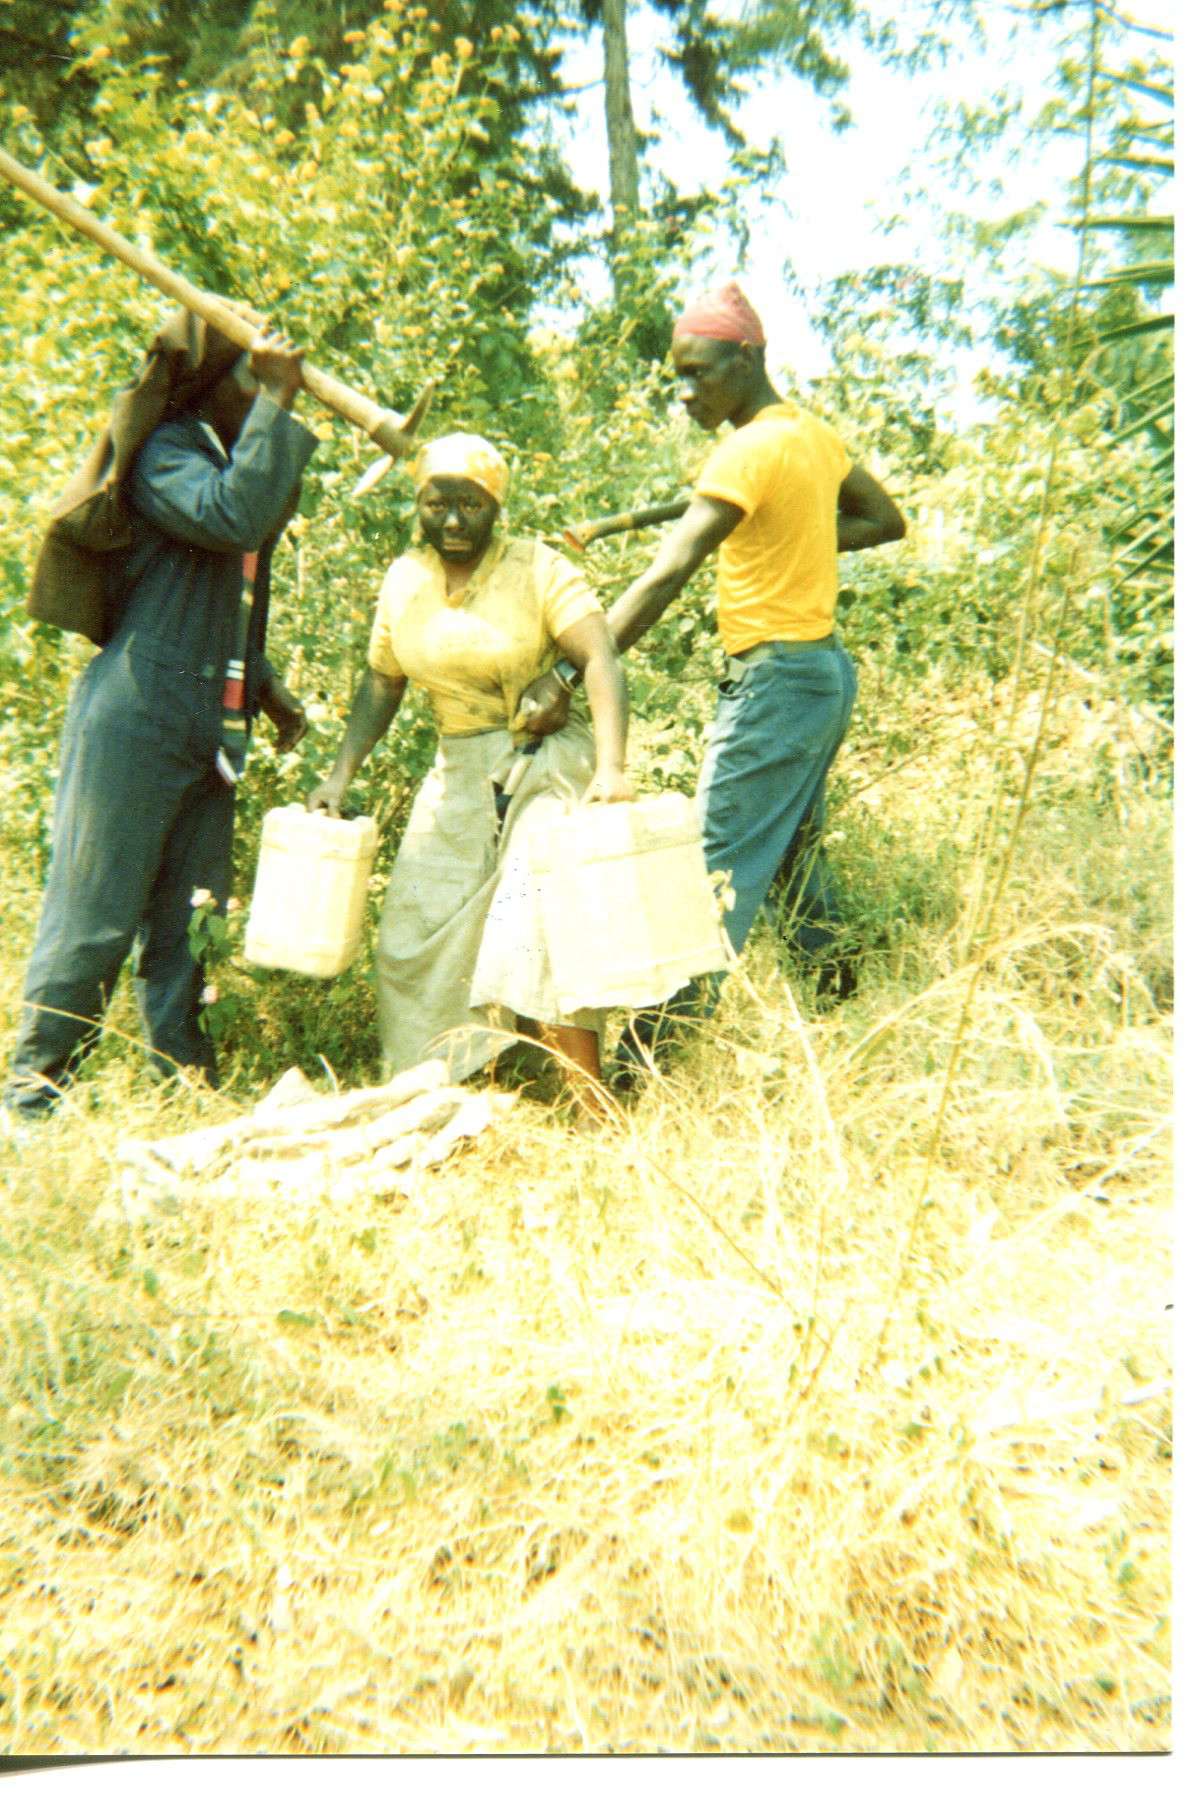 I am in the bush being escorted to fetch water.